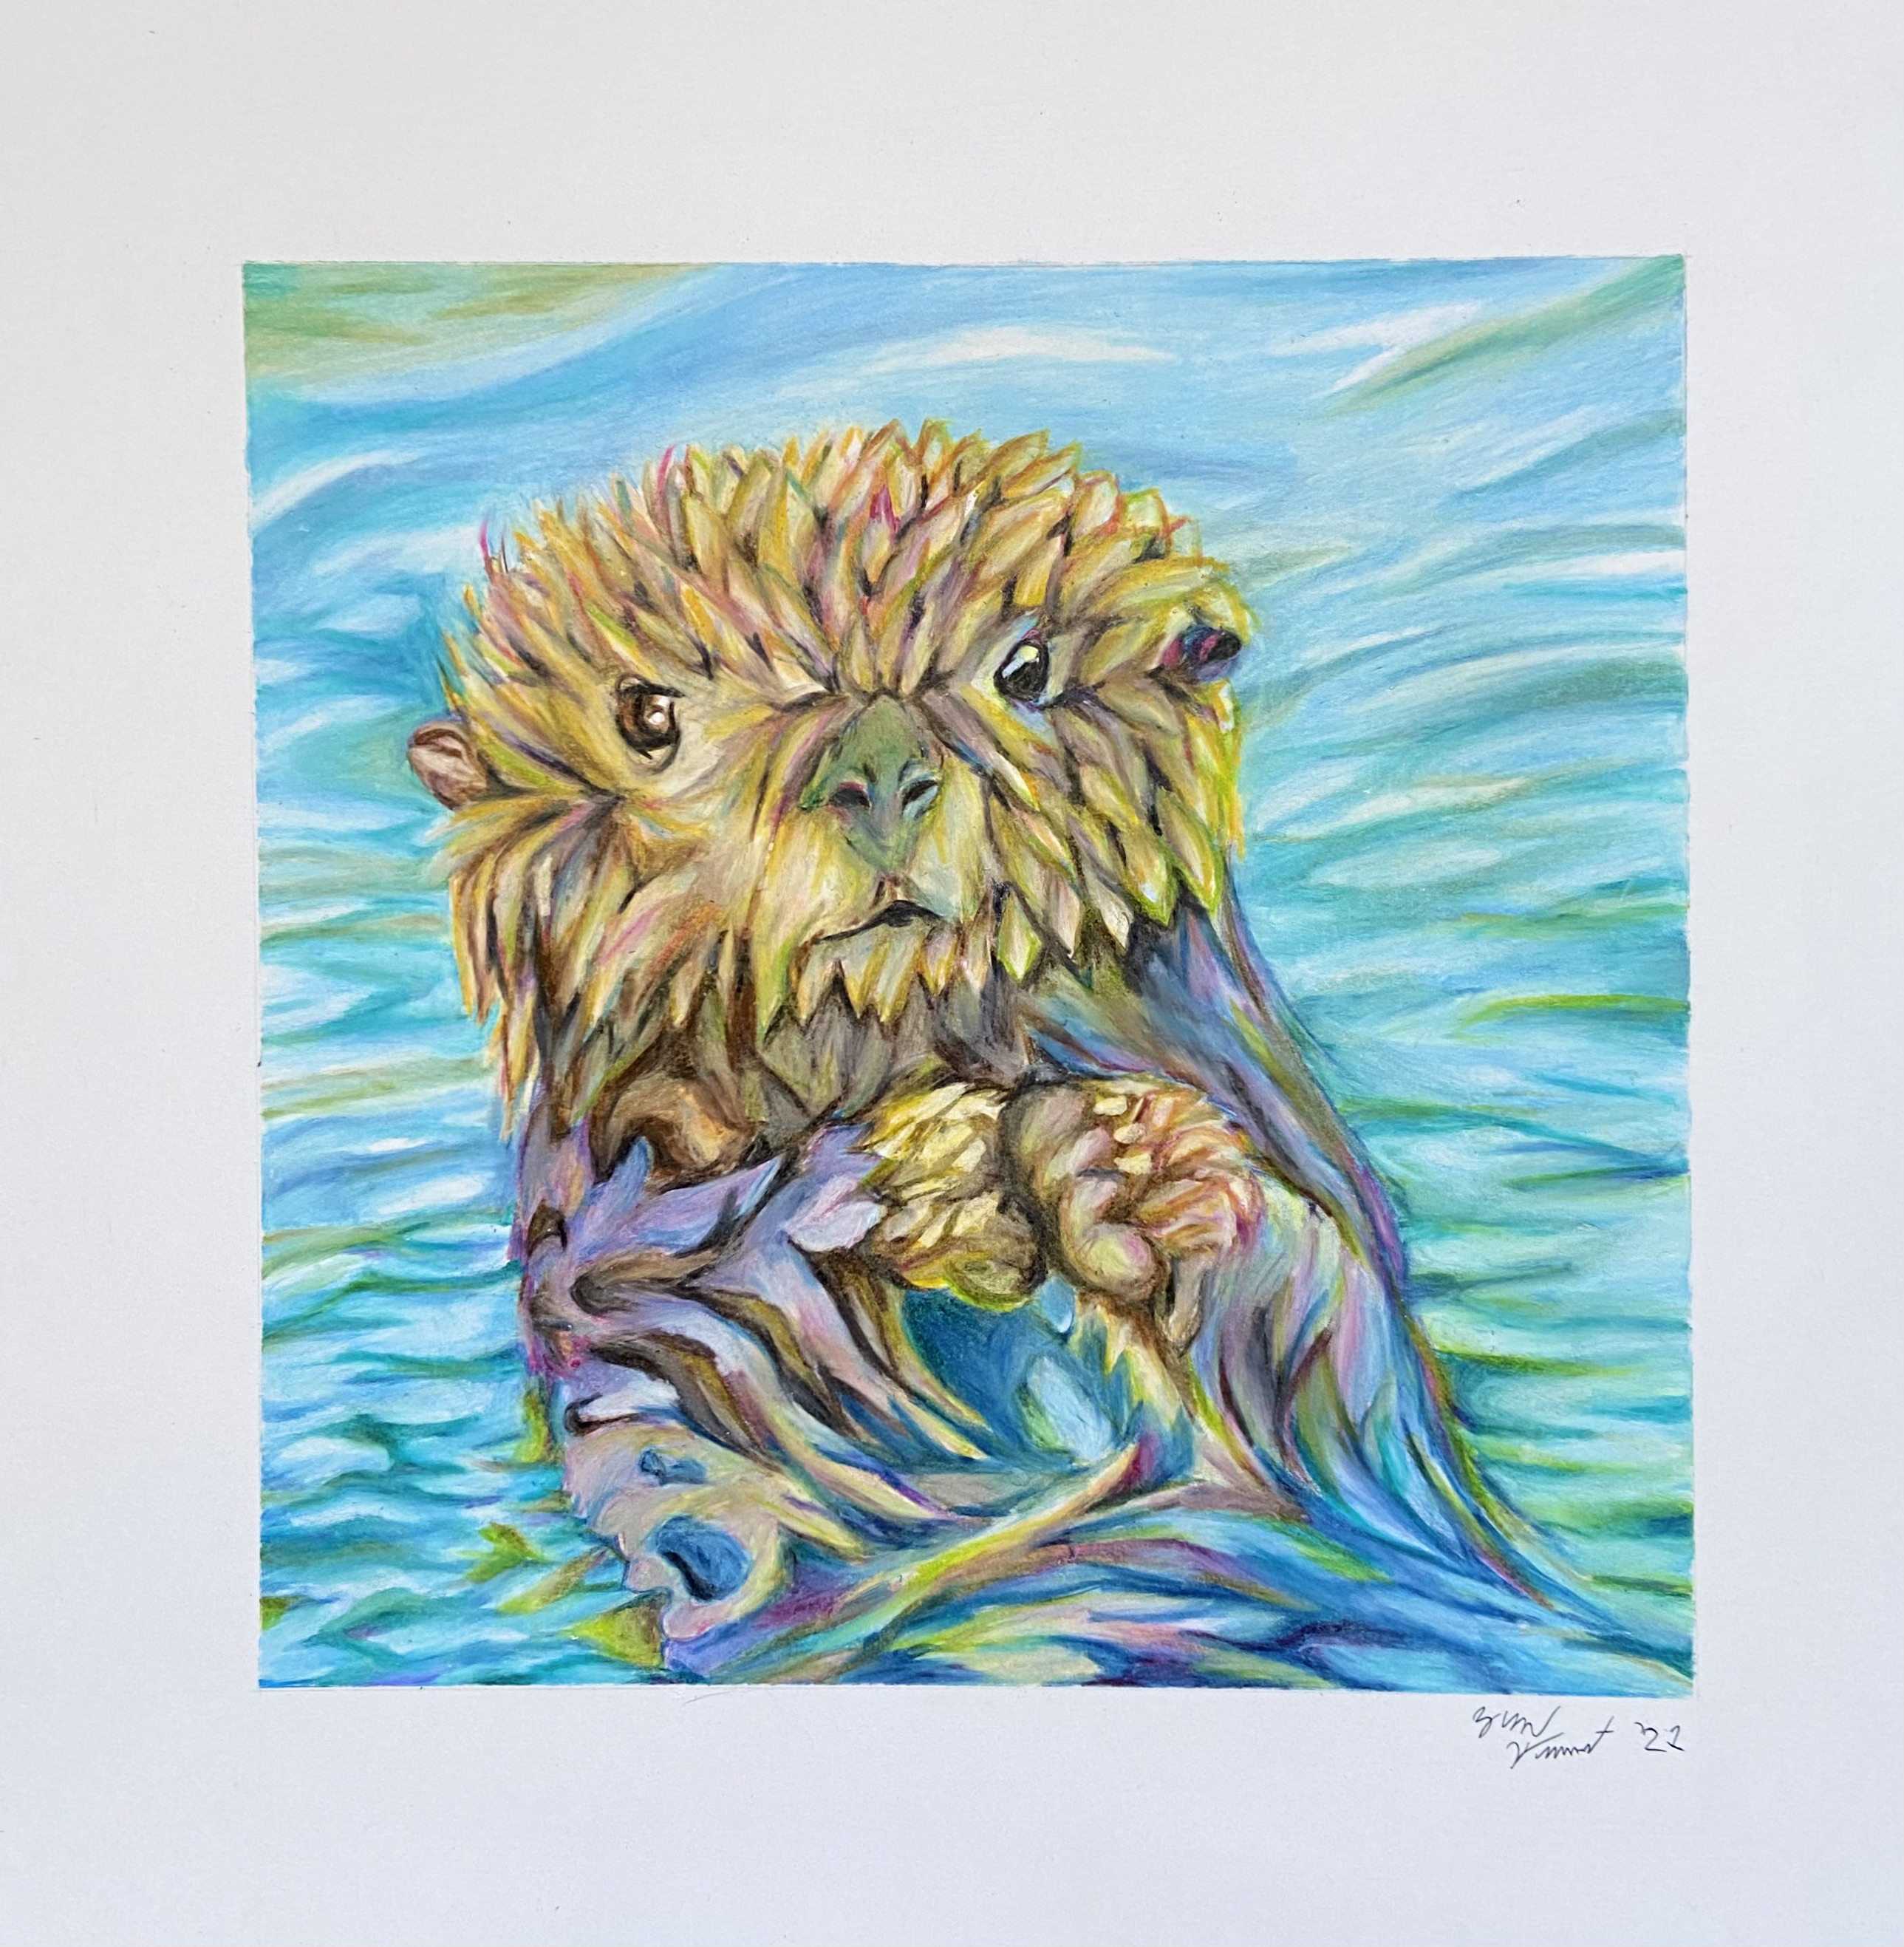 An illustration of a sea otter.